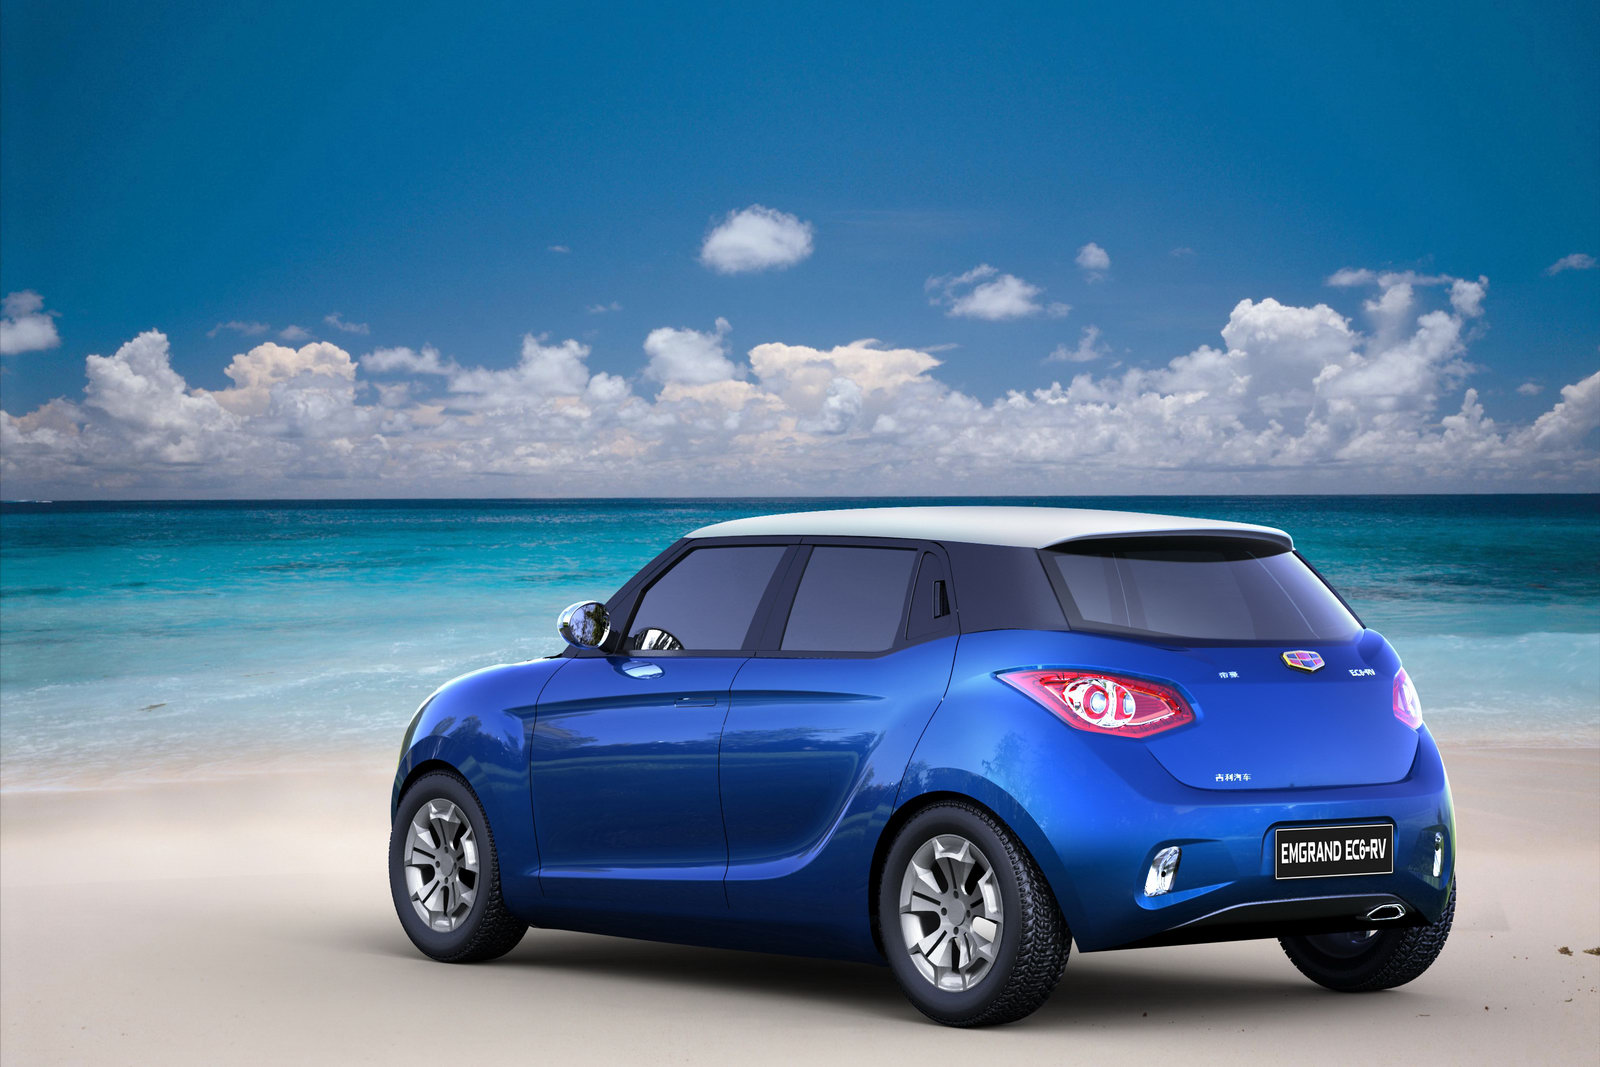 http://www.europecarnews.com/wp-content/gallery/geely-gs-cc-and-emgrand-ec6-rv/geely-emgrand-ec6-rv_2.jpg